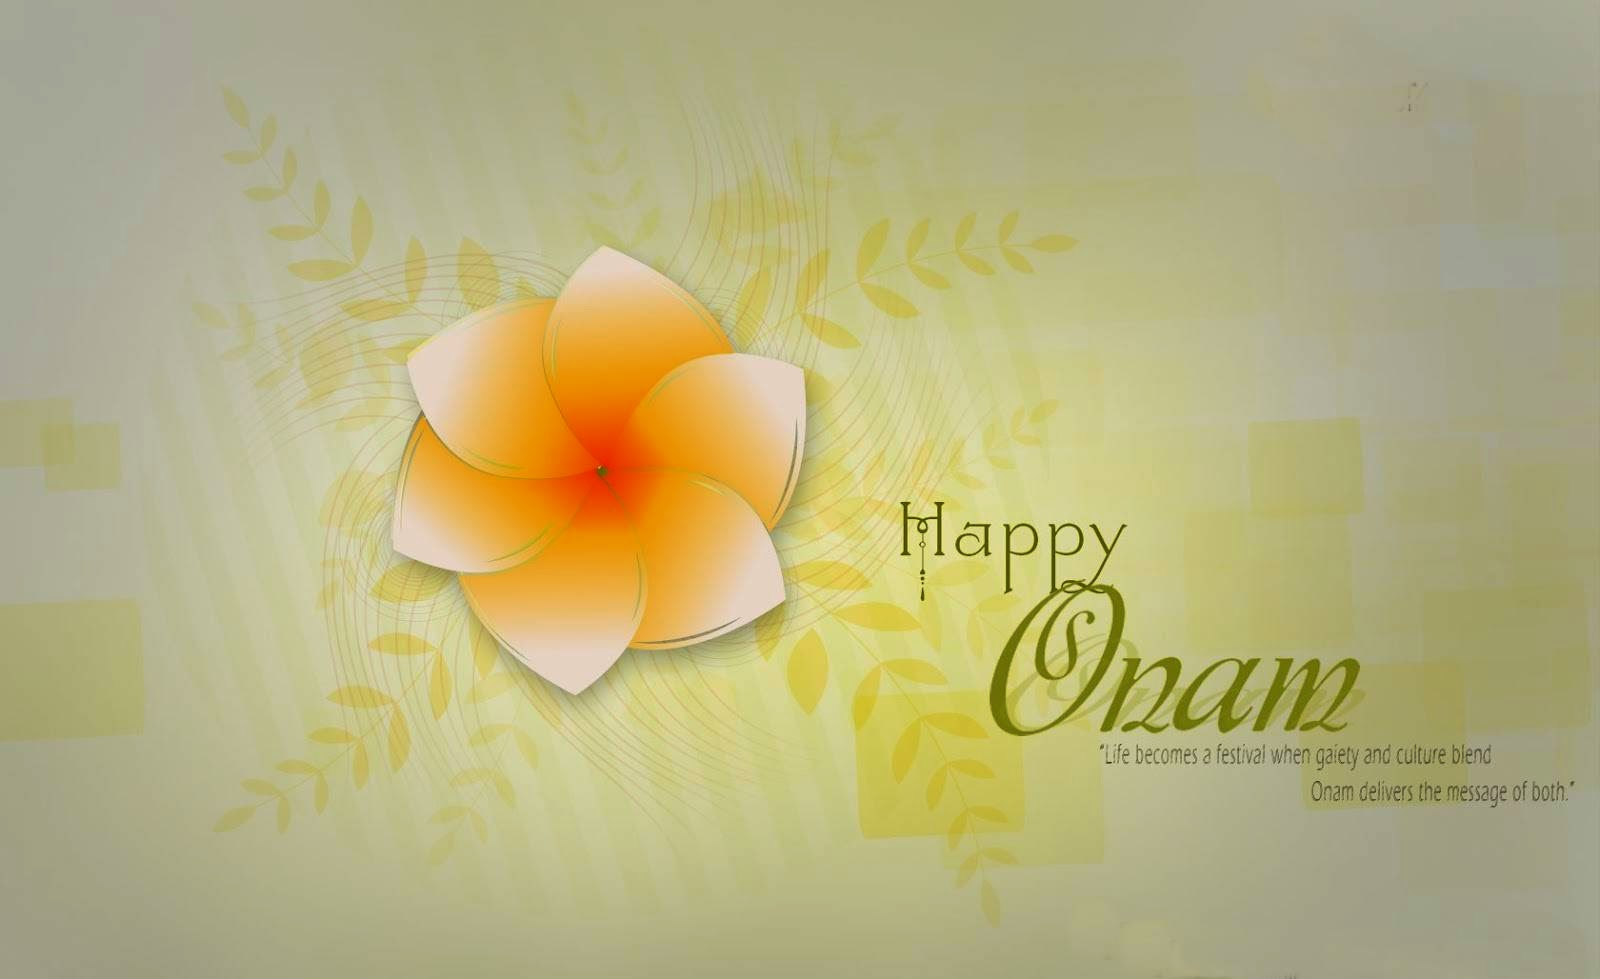 50 very beautiful happy onam wish pictures and images happy onam wishes wallpaper with flower kristyandbryce Image collections